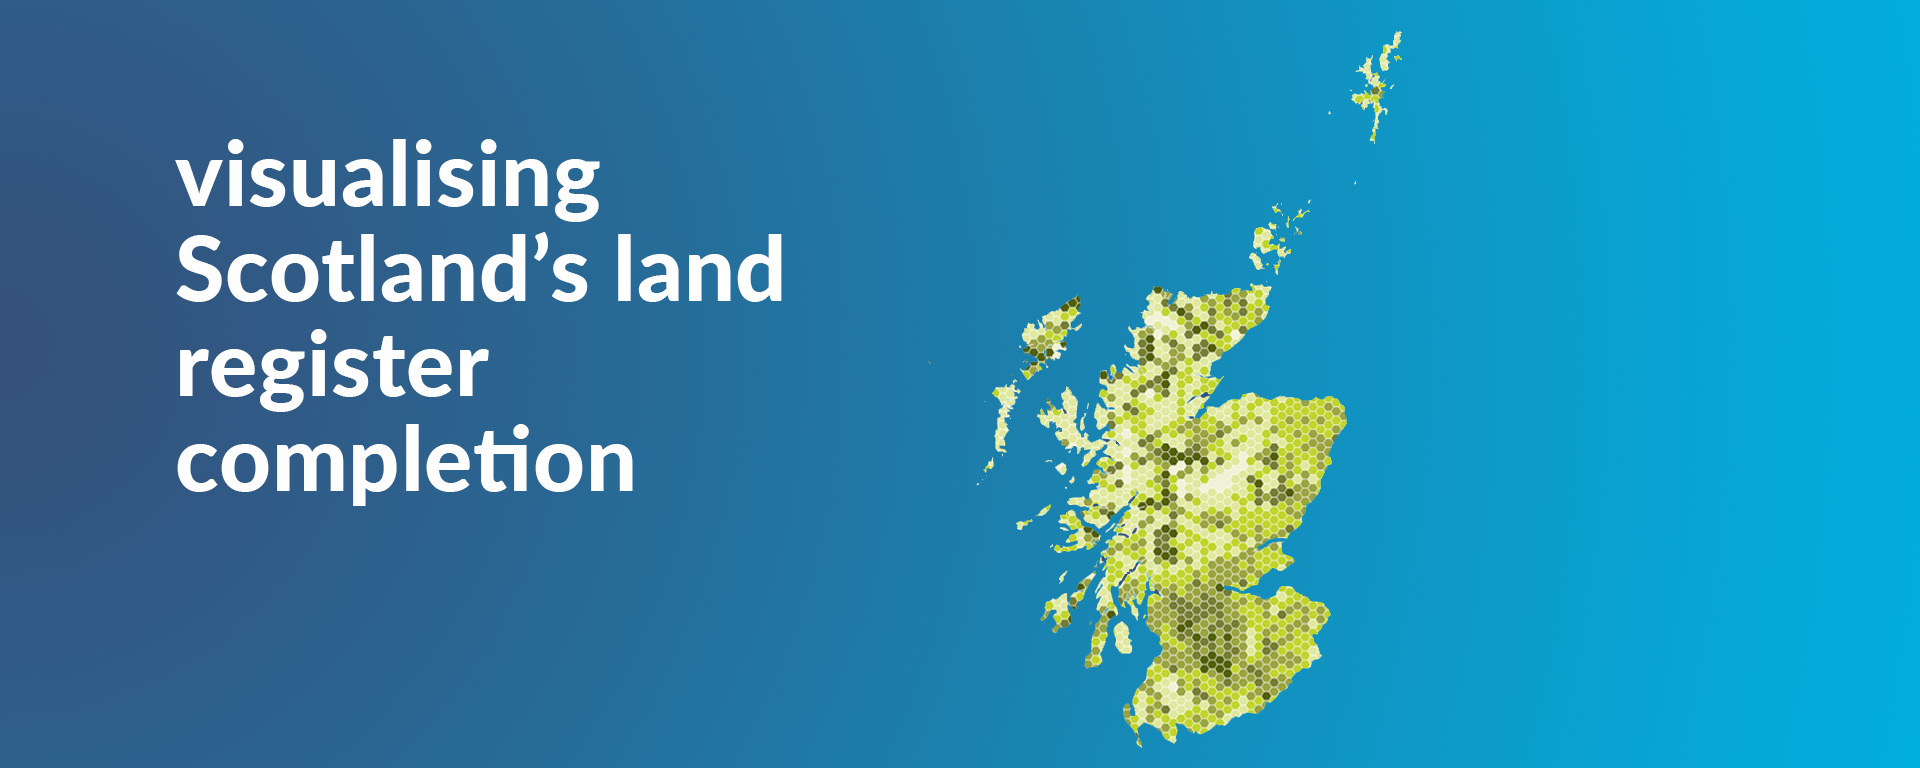 A graphic visualisation of the land register completion in Scotland with explanatory text to the left